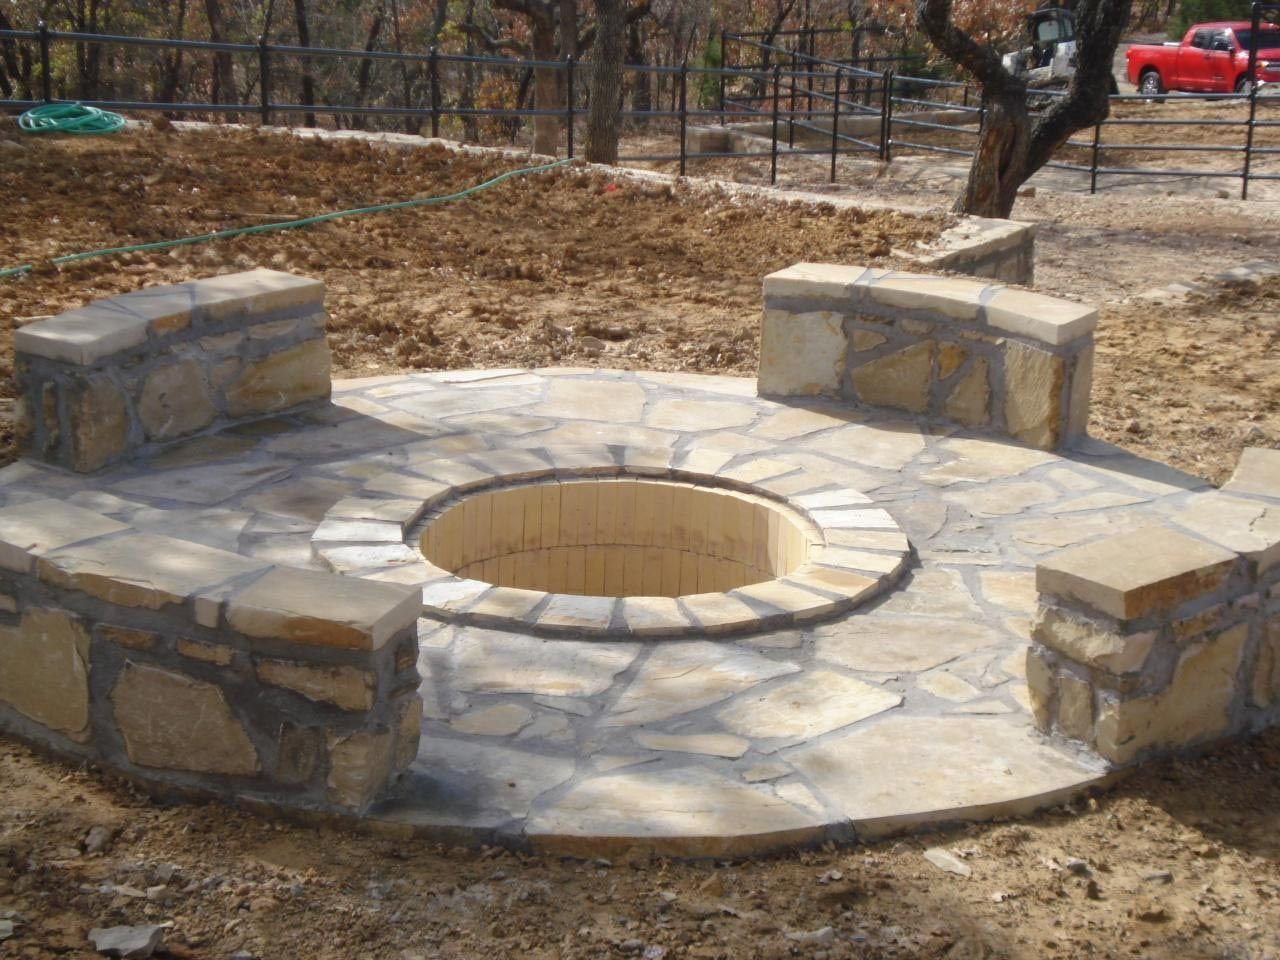 How To Make A Concrete Fire Pit Fire Pit Design Ideas With